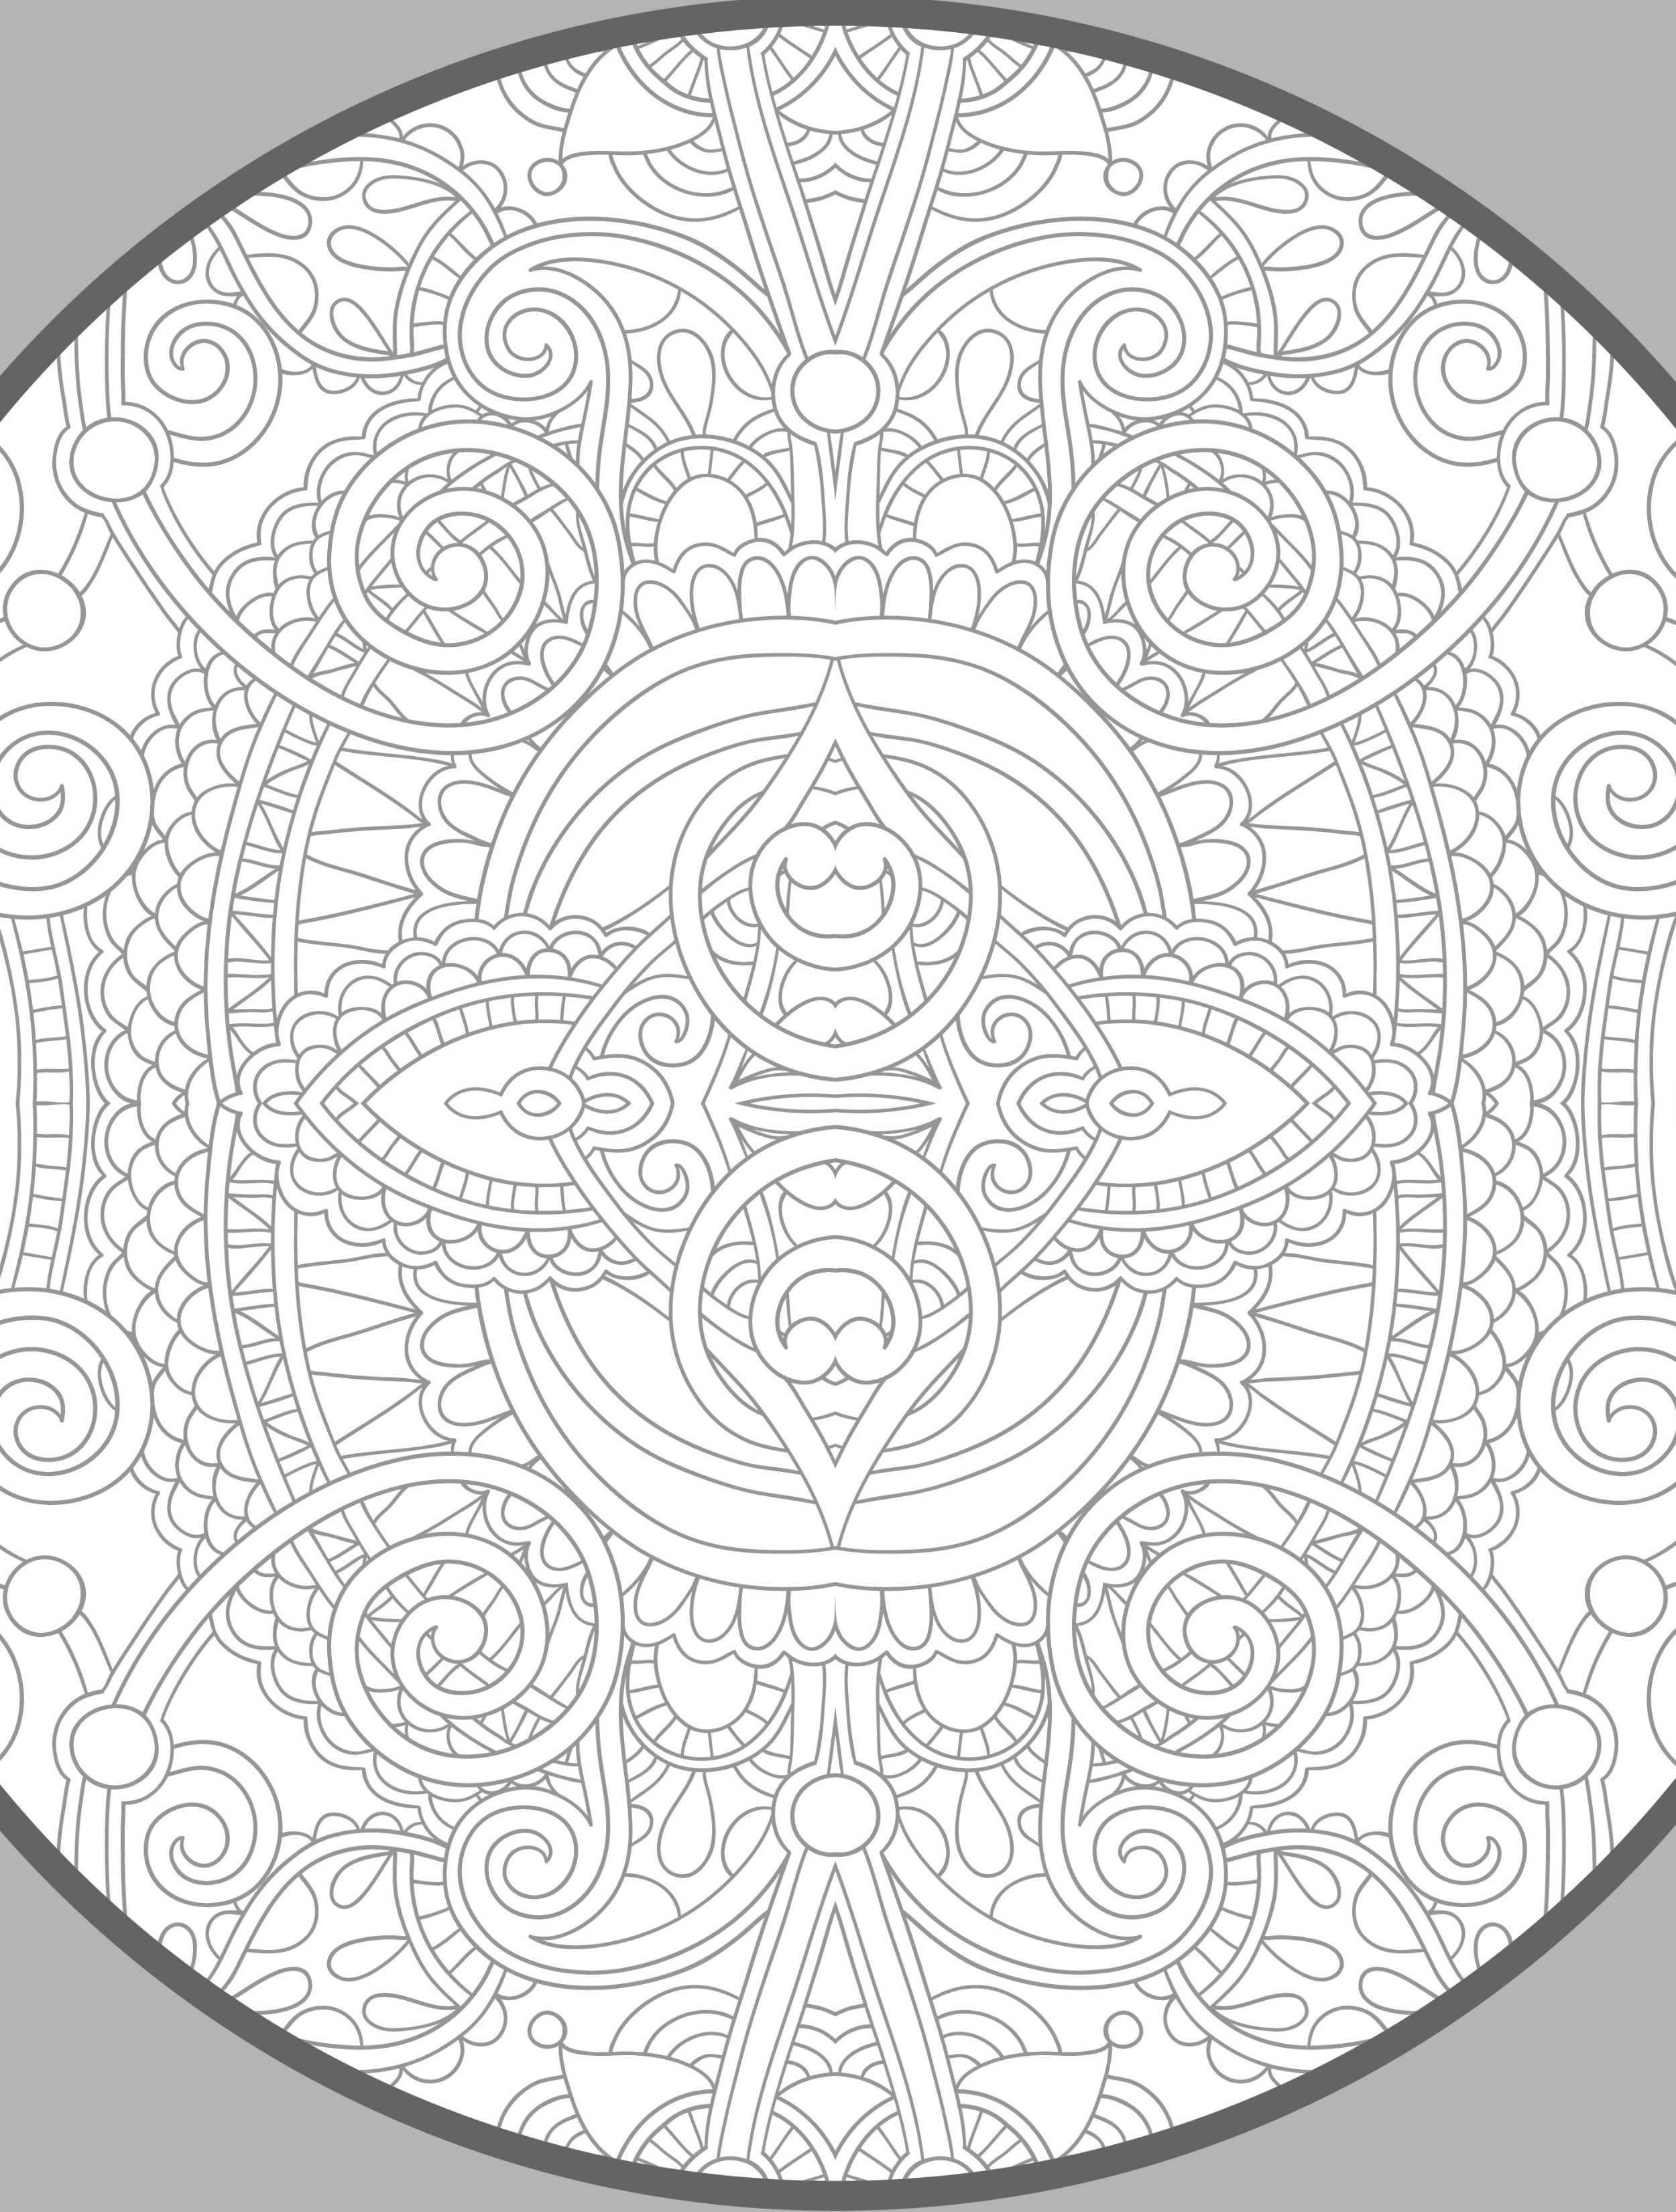 free downloadable adult coloring pages - 14